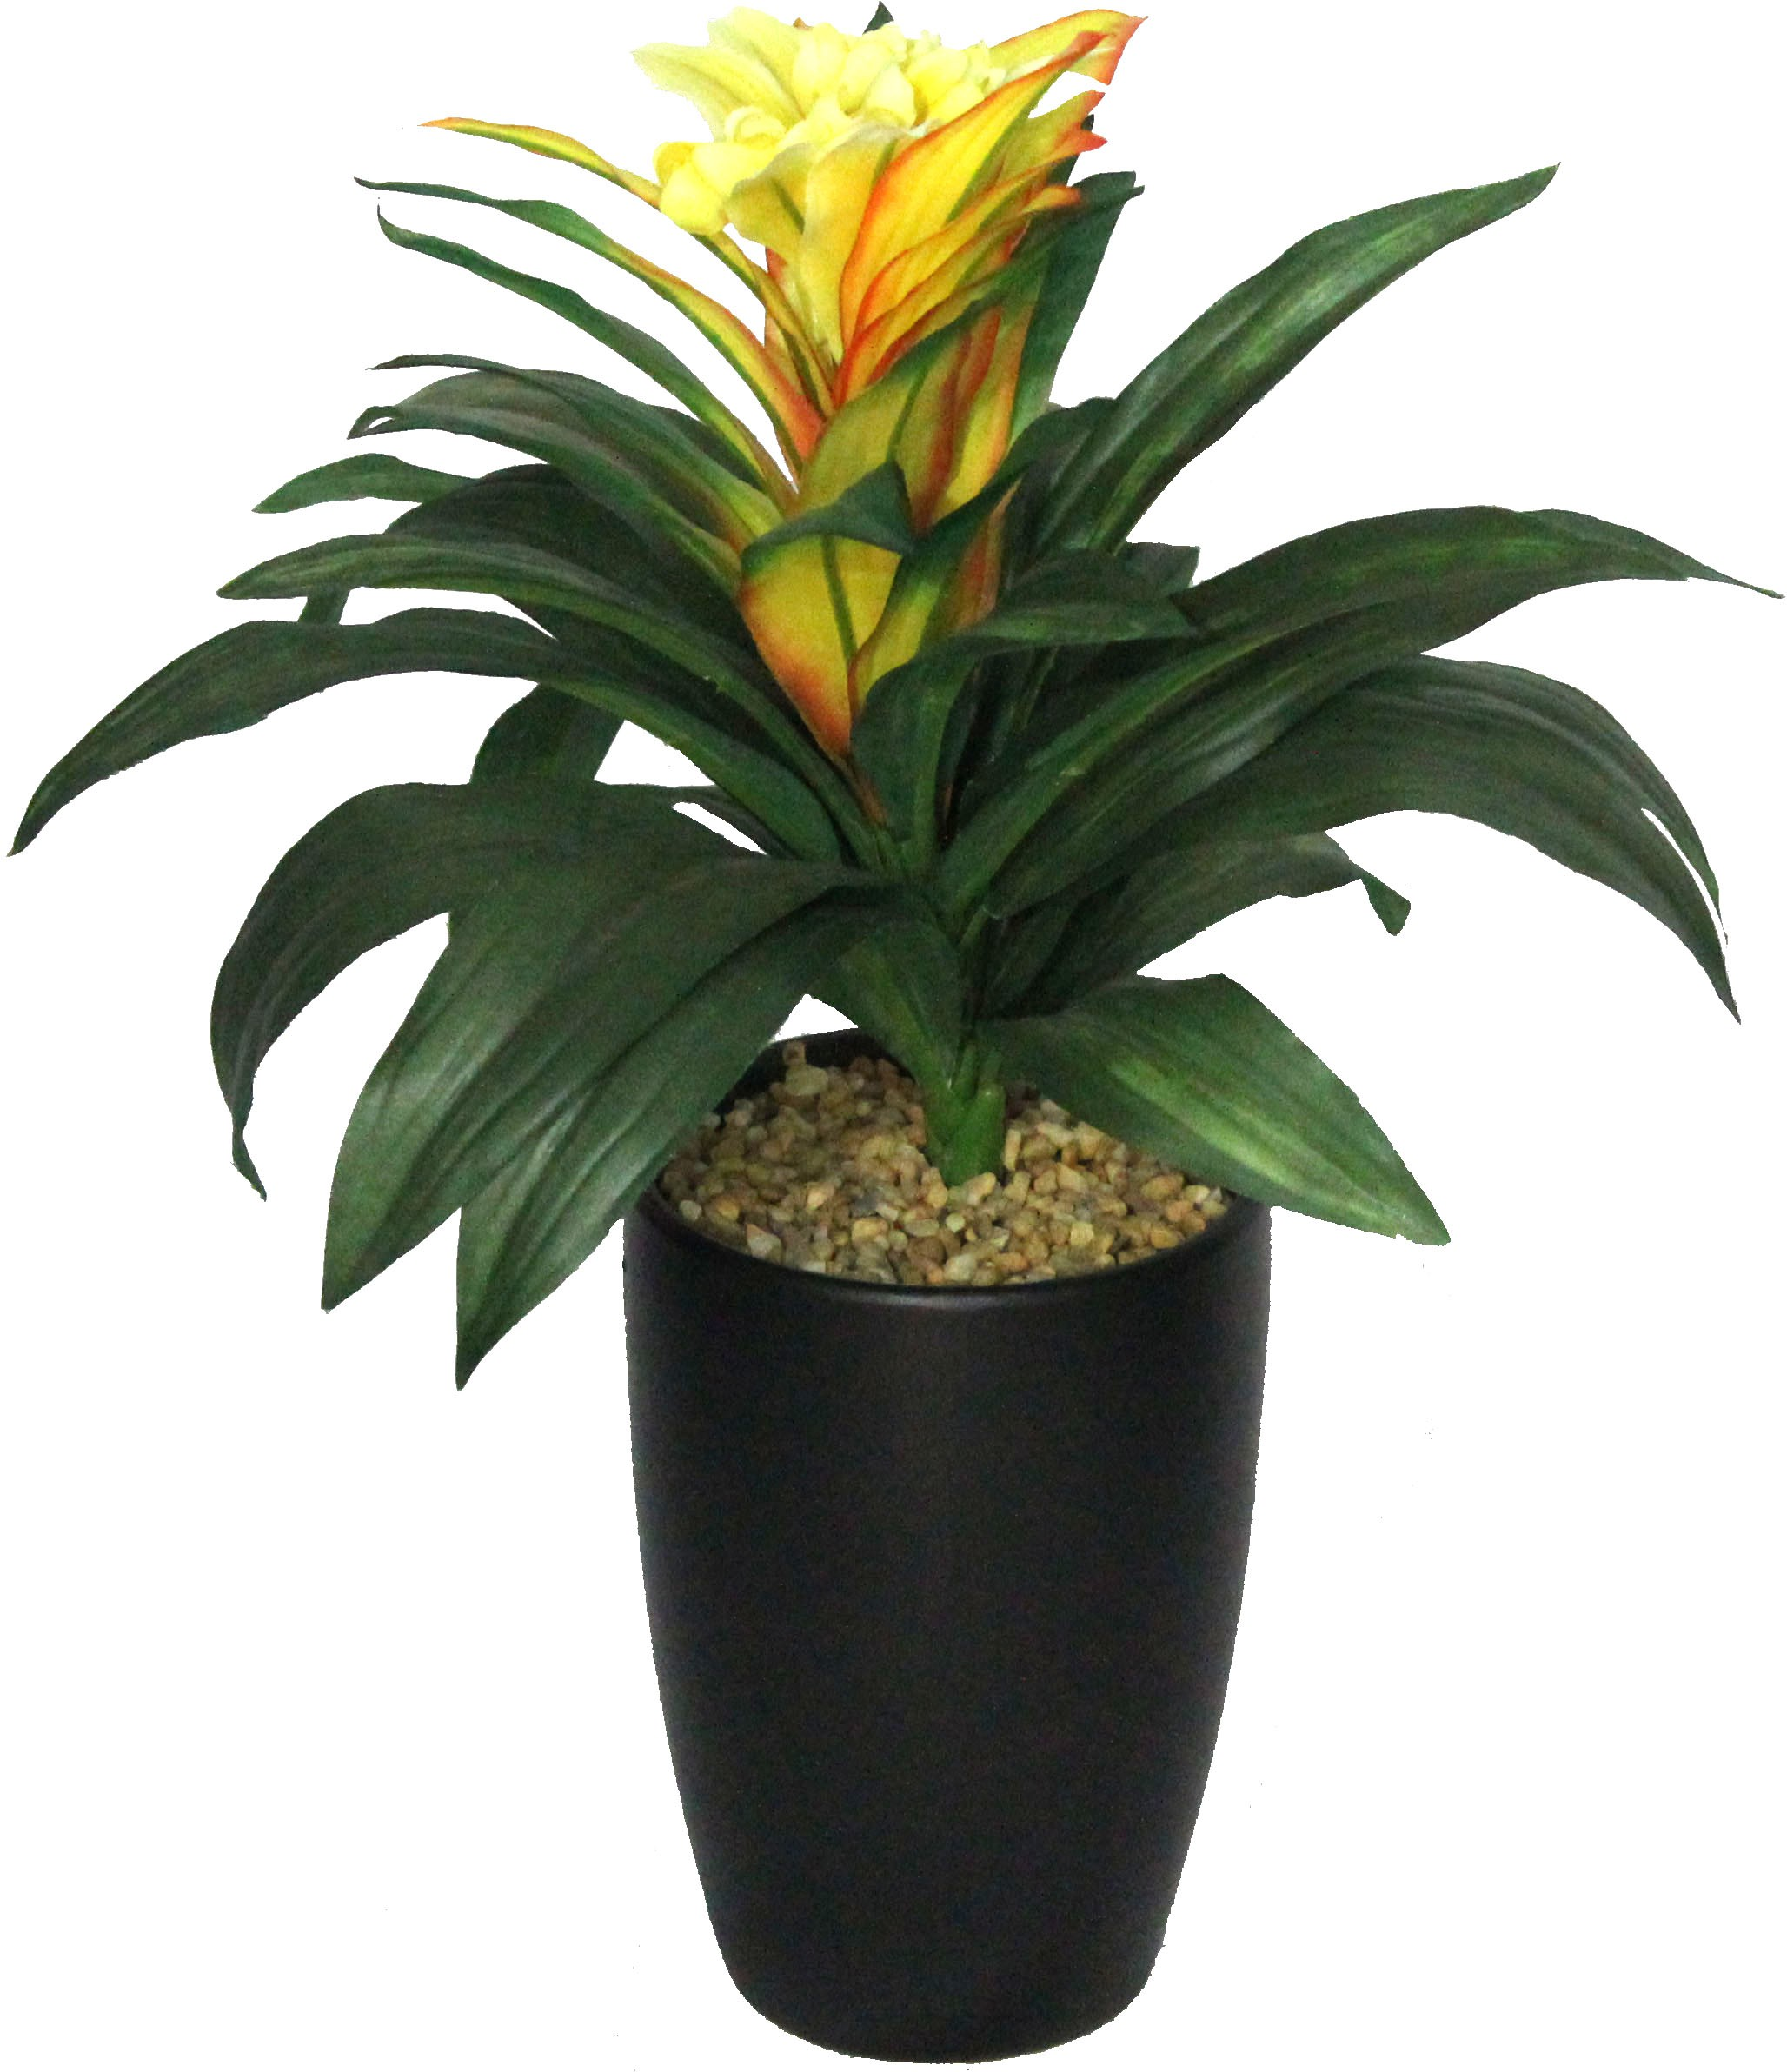 PolliNation Yellow Guzmania With Pot Artificial Plant  with Pot